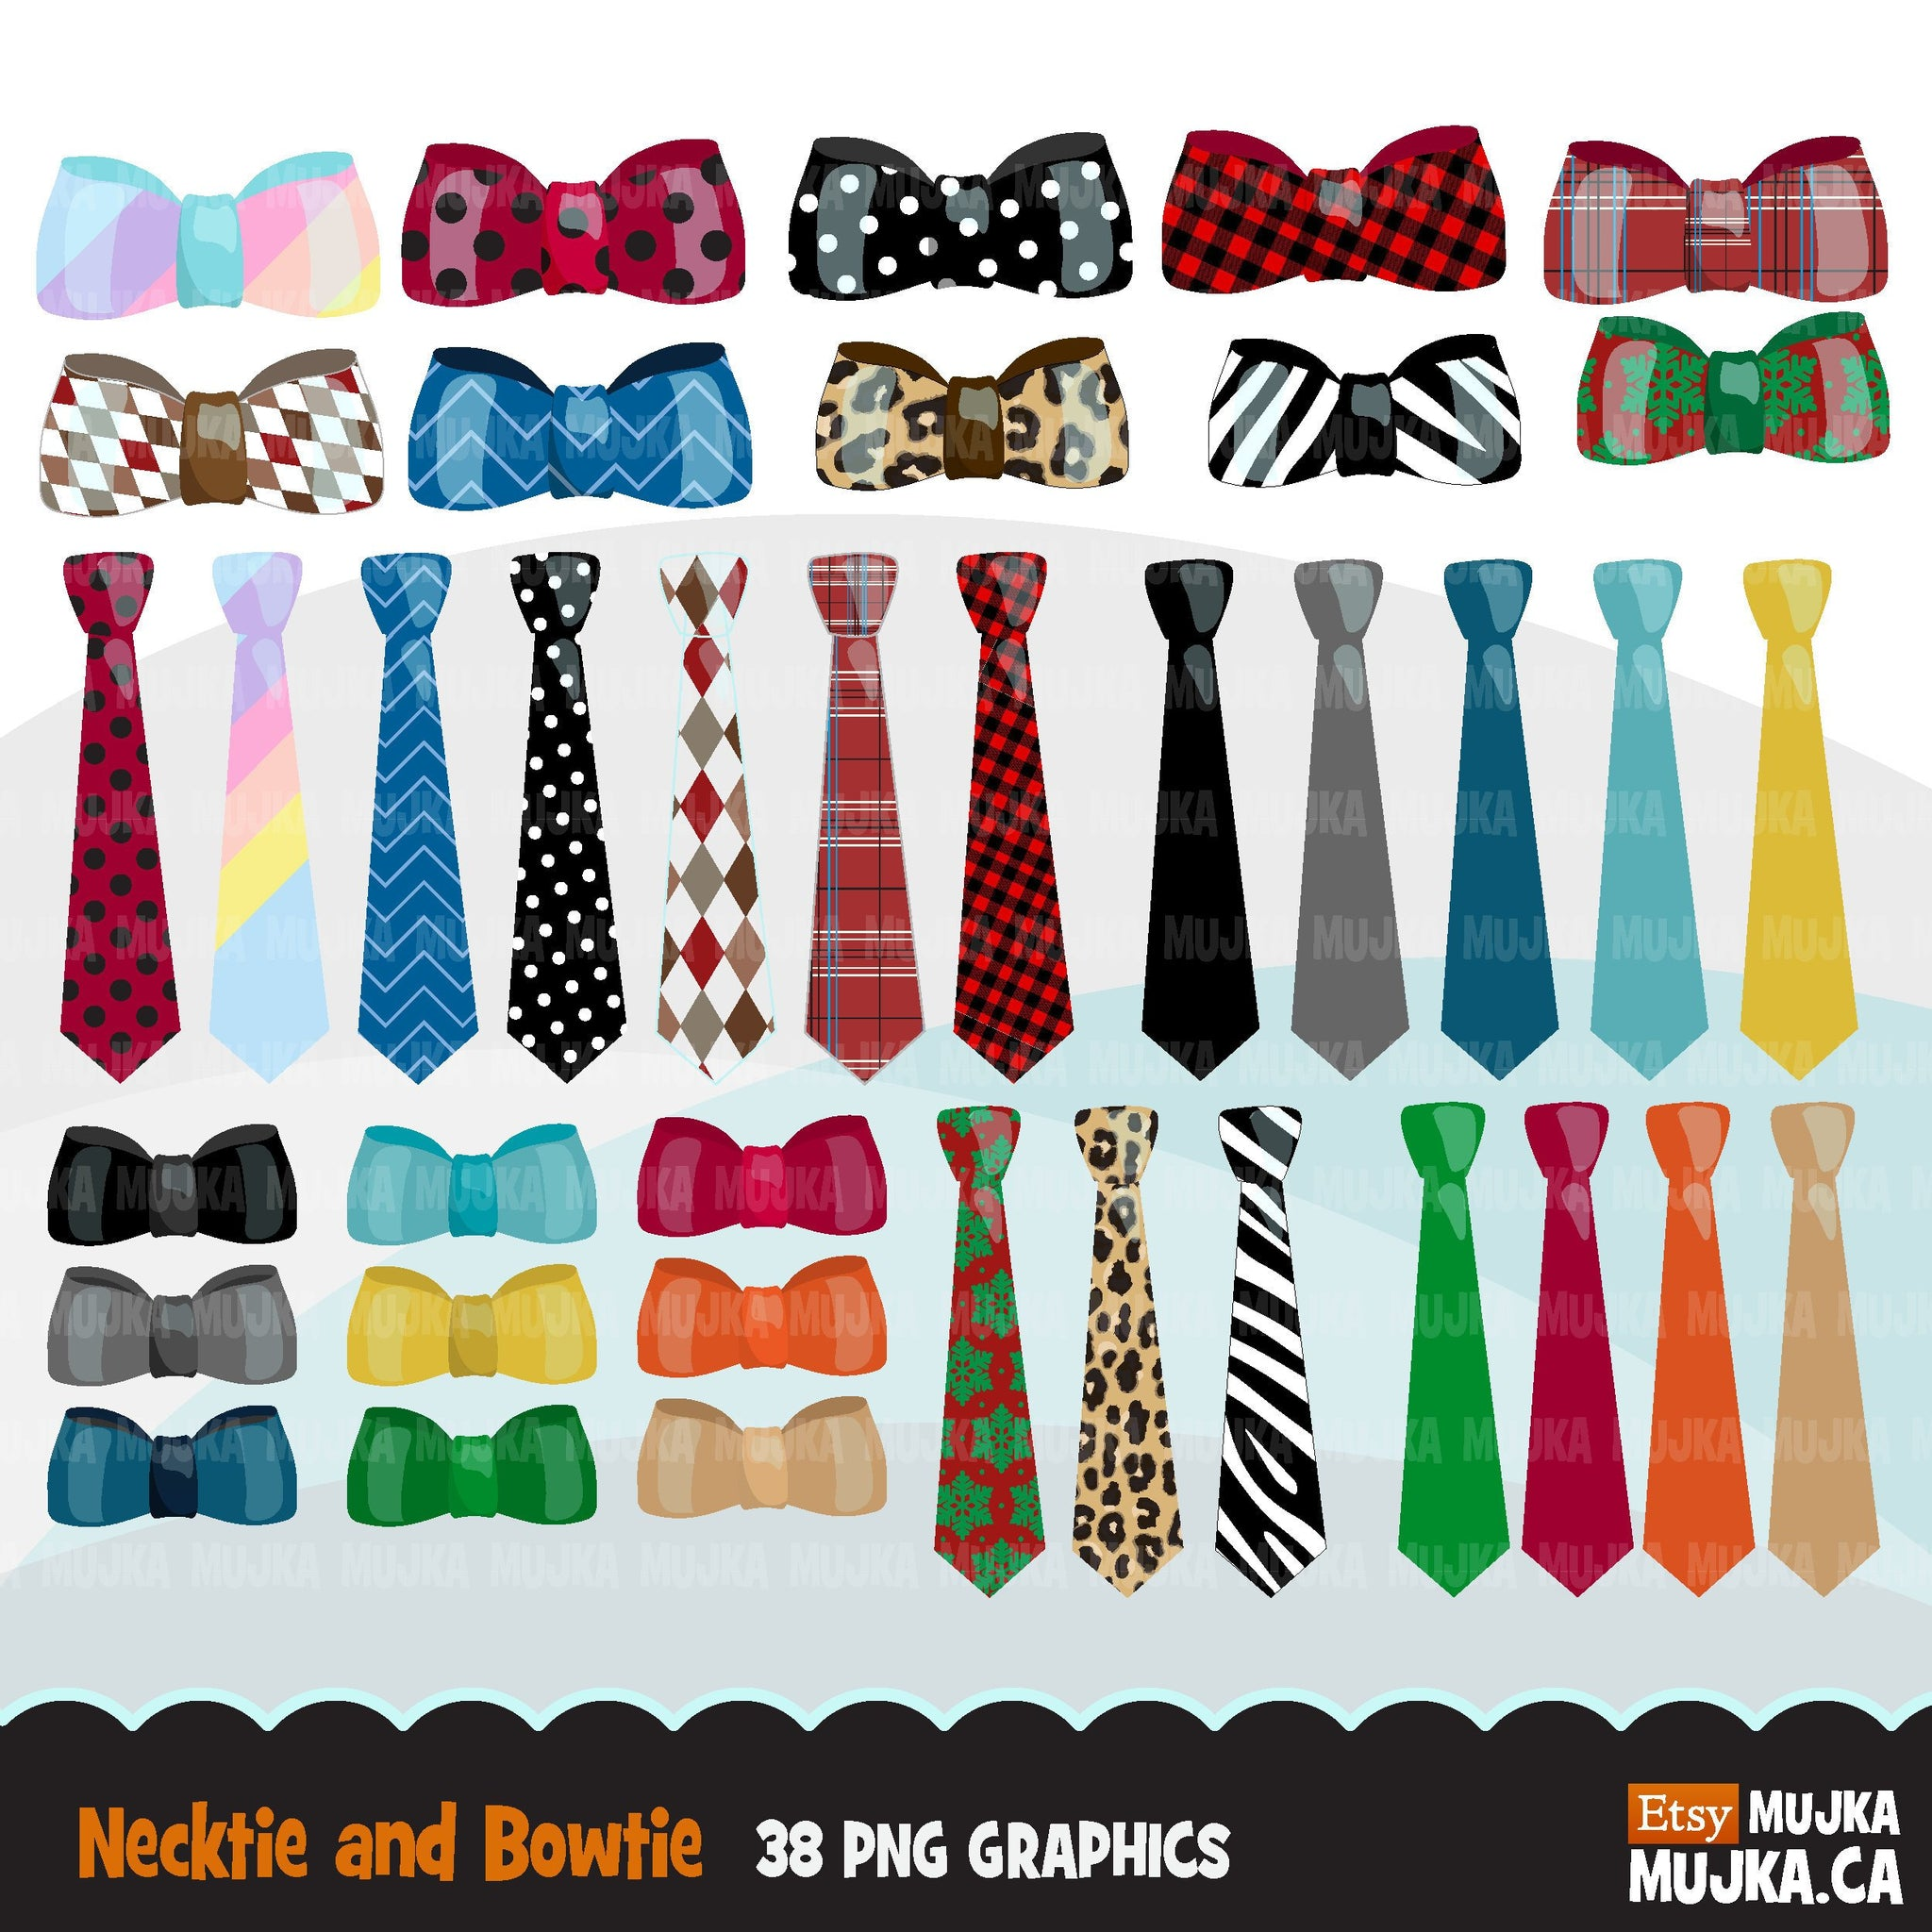 Bow tie and necktie clipart for boys outfits, father's day, baby shower graphics, commercial use clip art